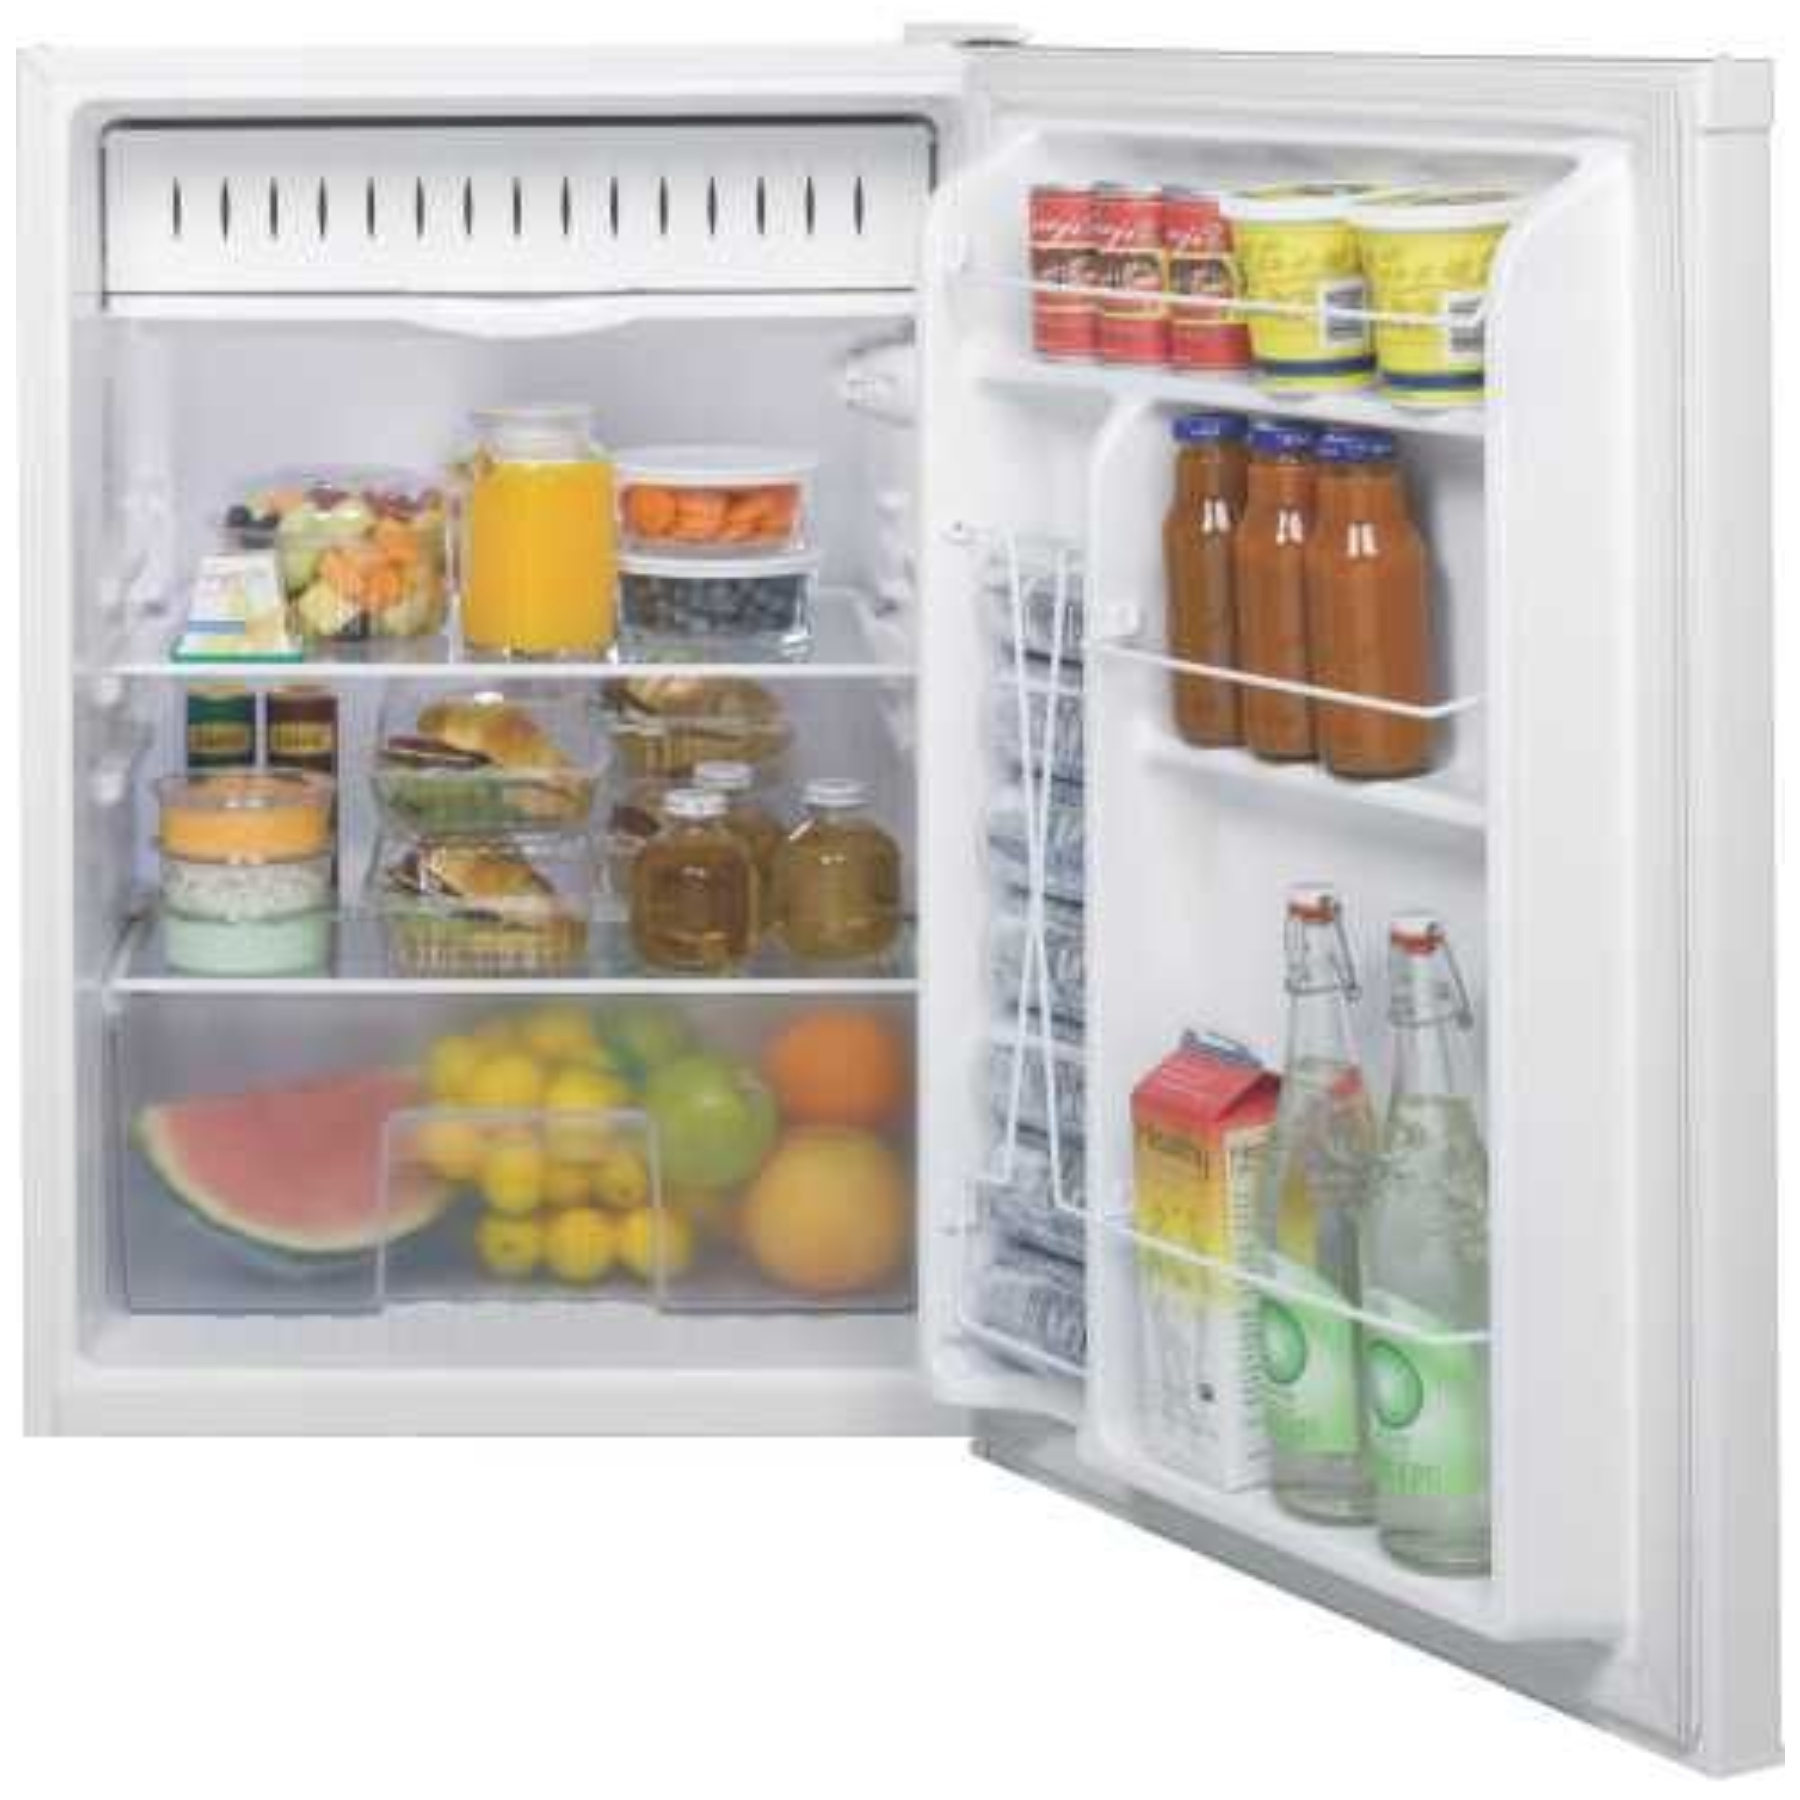 GE� BUILT-IN 24-INCH DISHWASHER, WHITE, 5 CYCLES / 2 OPTIONS